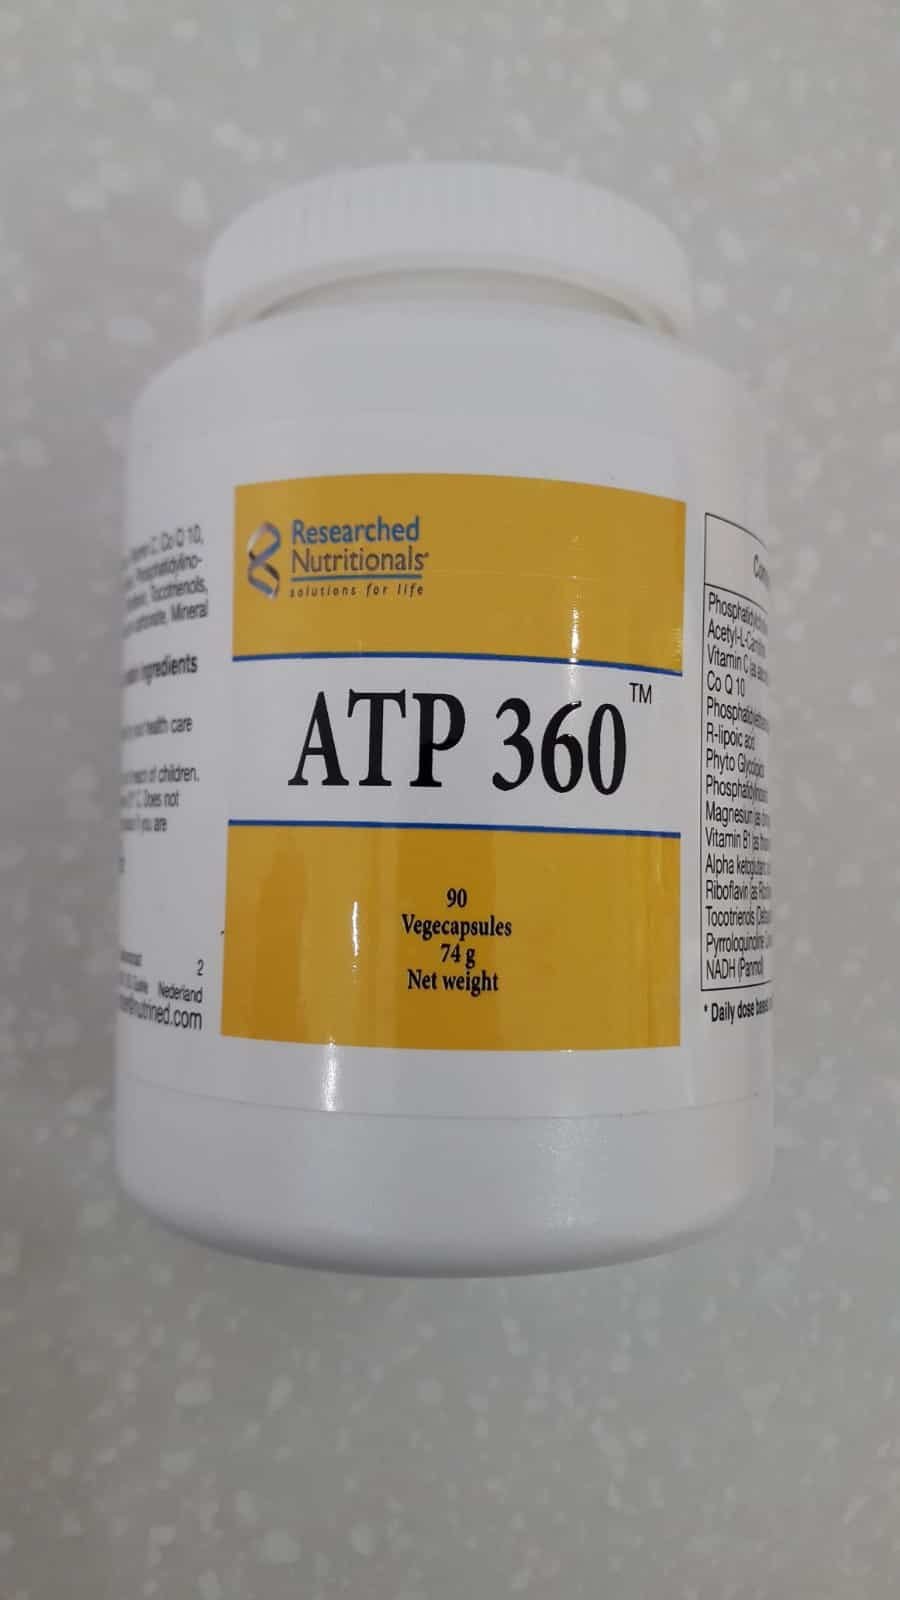 Researched Nutritionals ATP 360